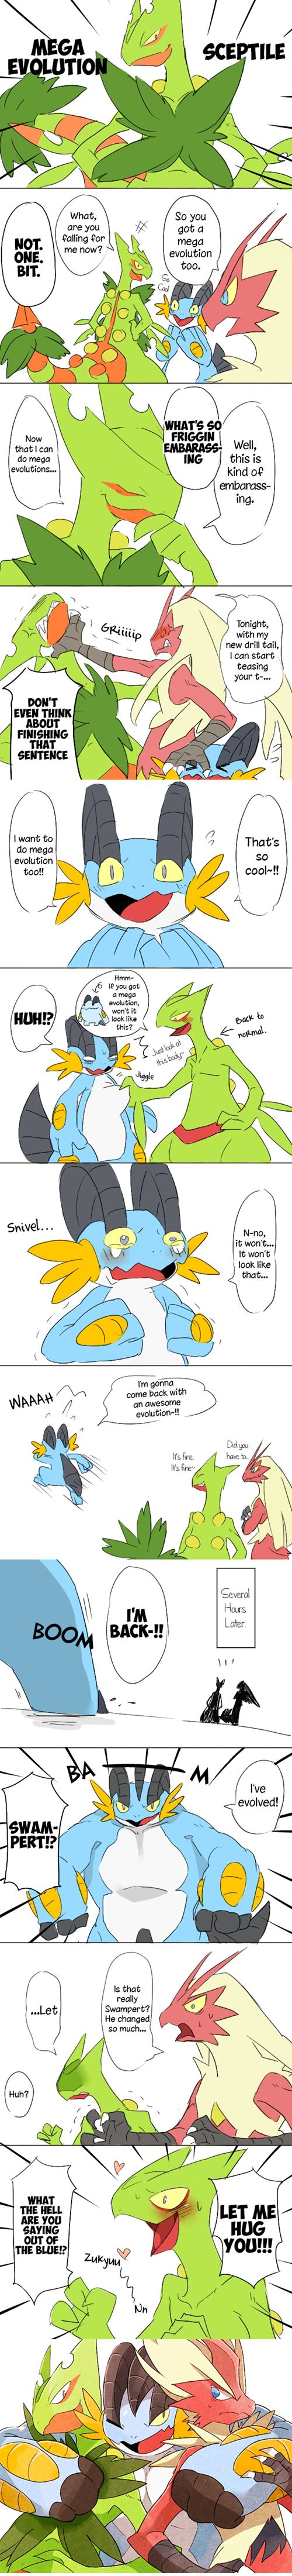 mega Sceptile is SO amazing! Blaziken and Swampert are right behind in the same line